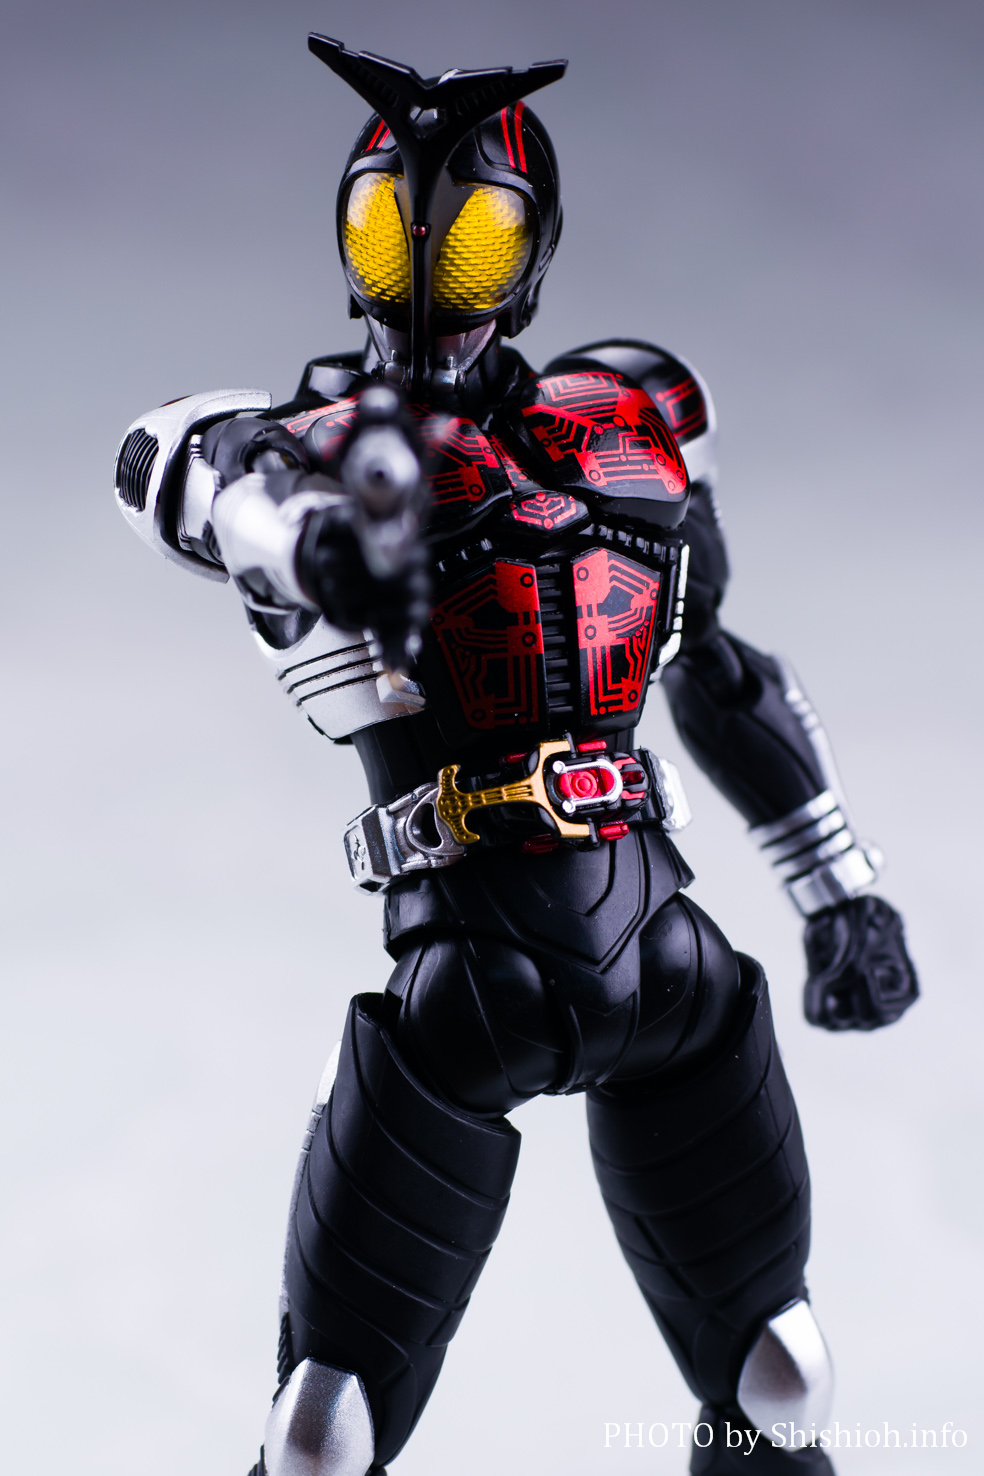 S.H.Figuarts(真骨彫製法)仮面ライダーダークカブト